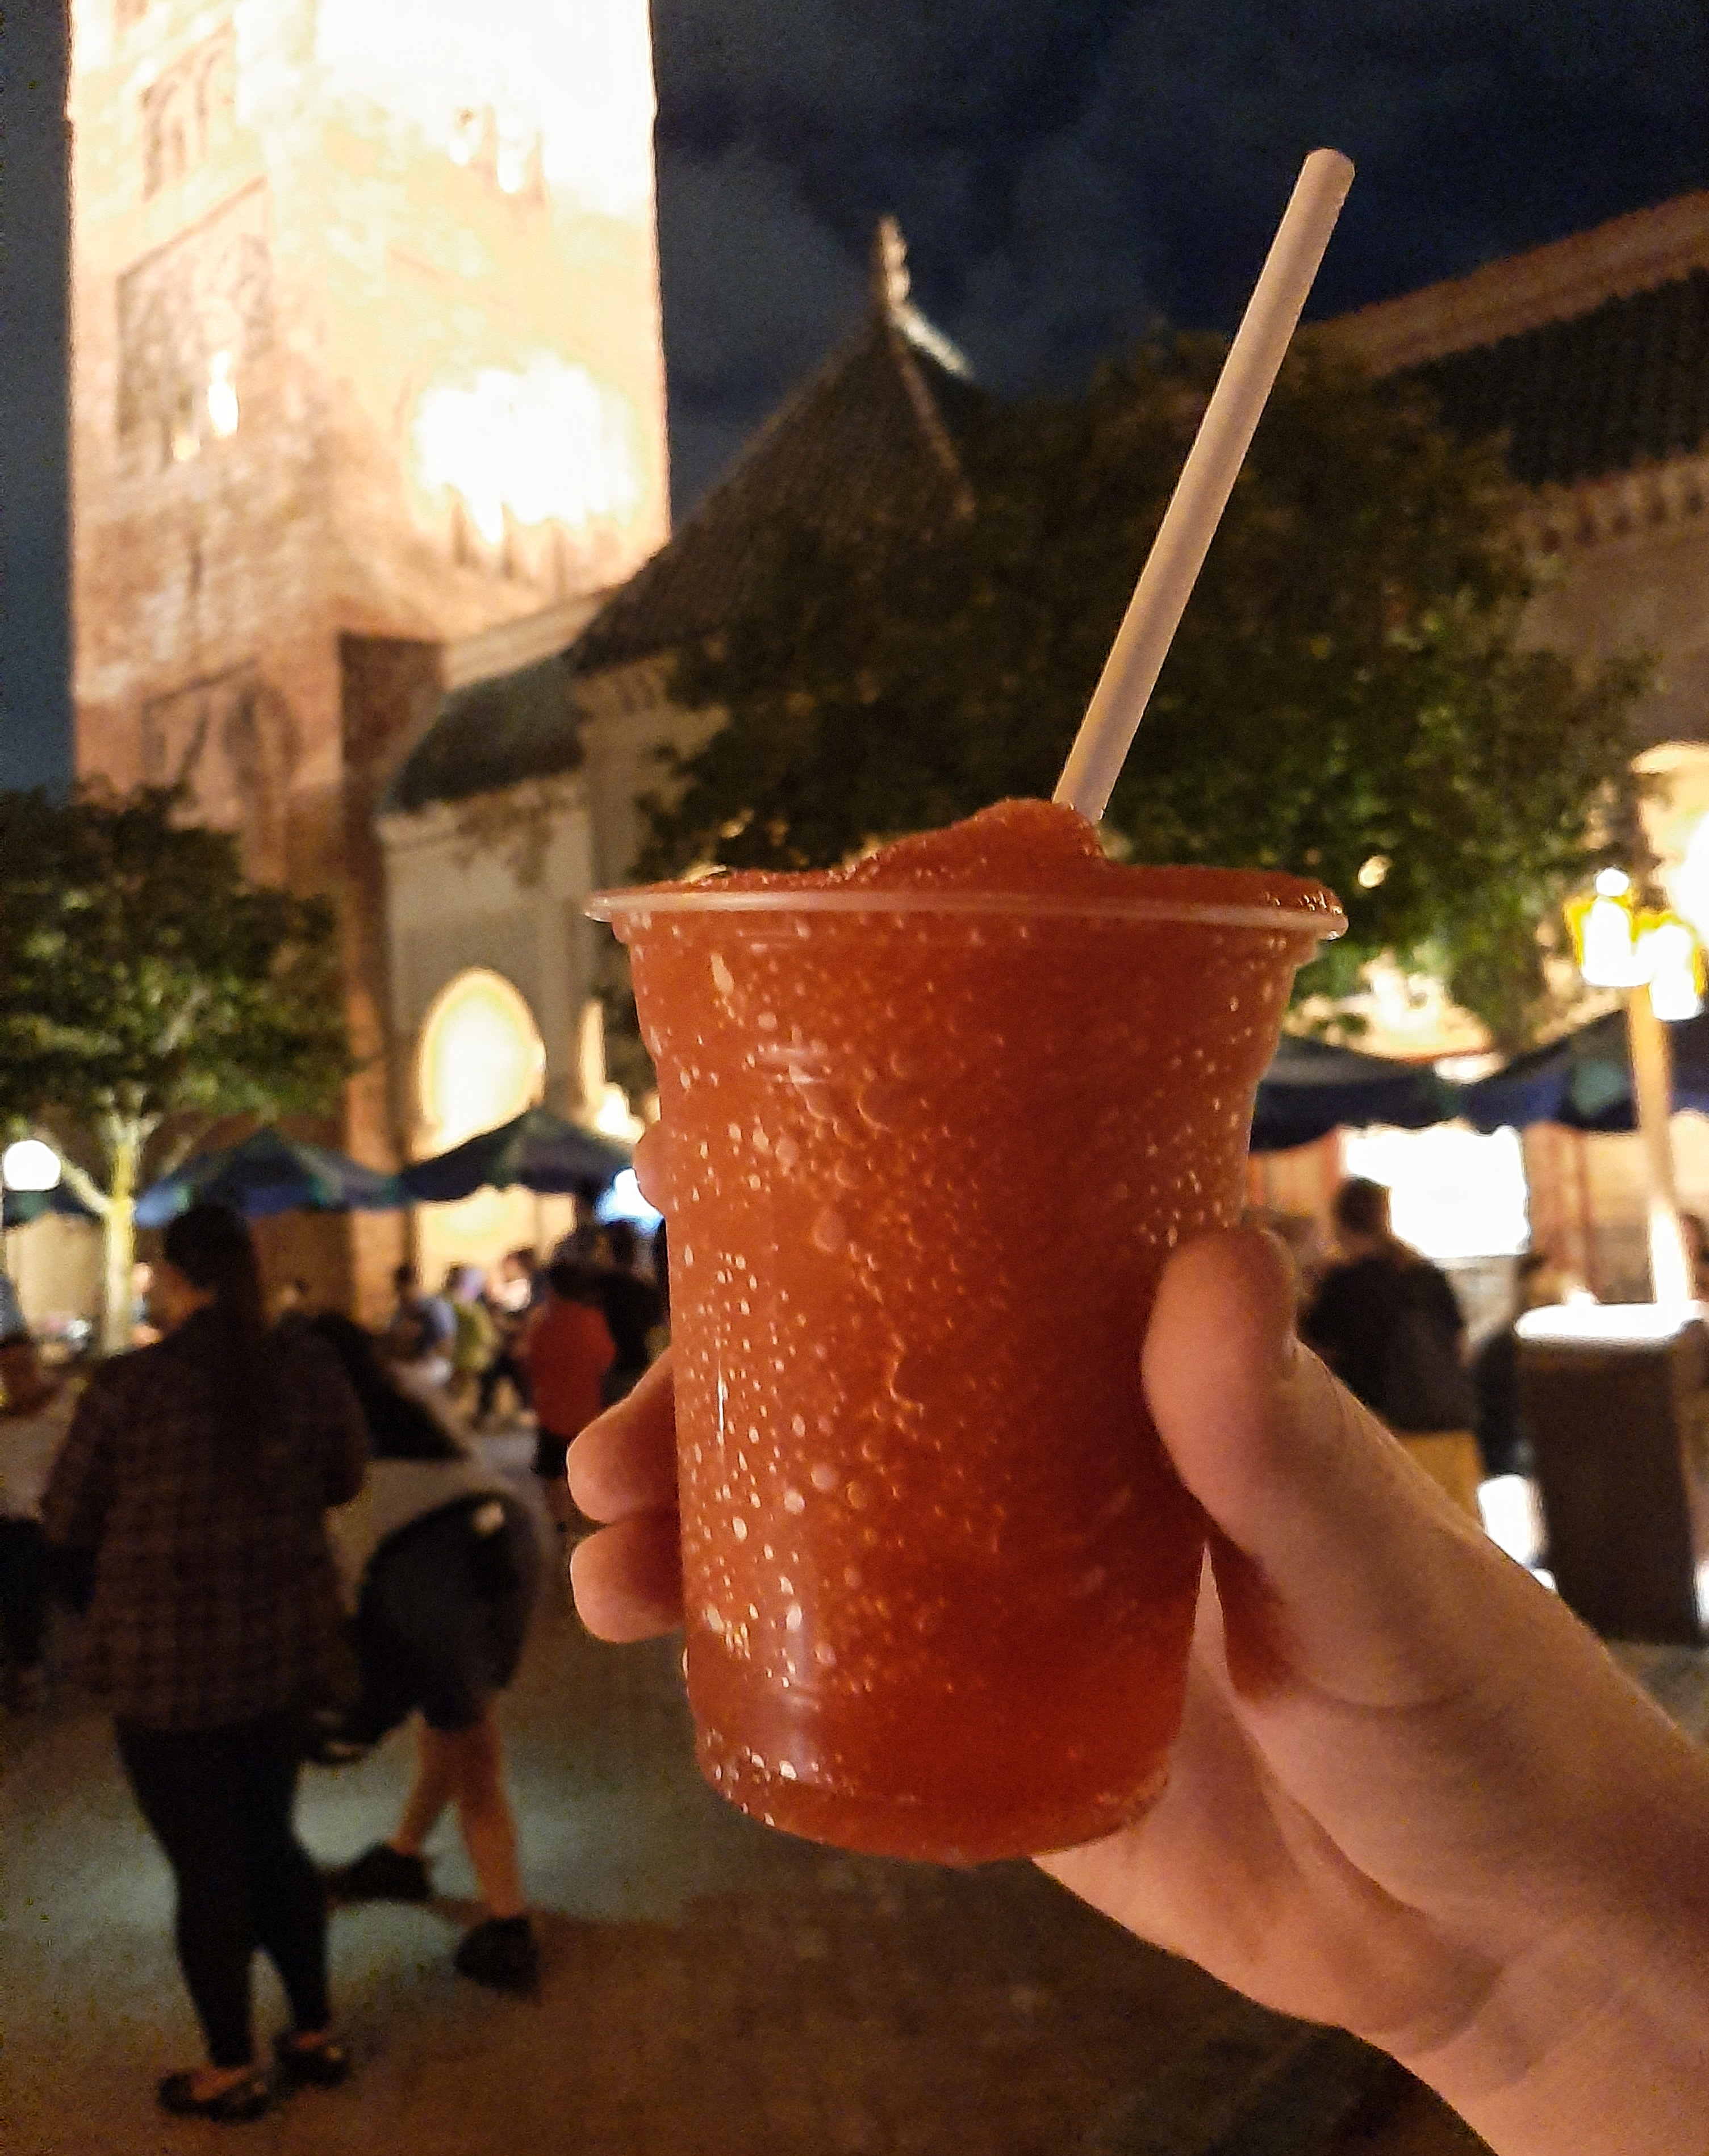 Habibi Daiquiri against the backdrop of Morocco in EPCOT